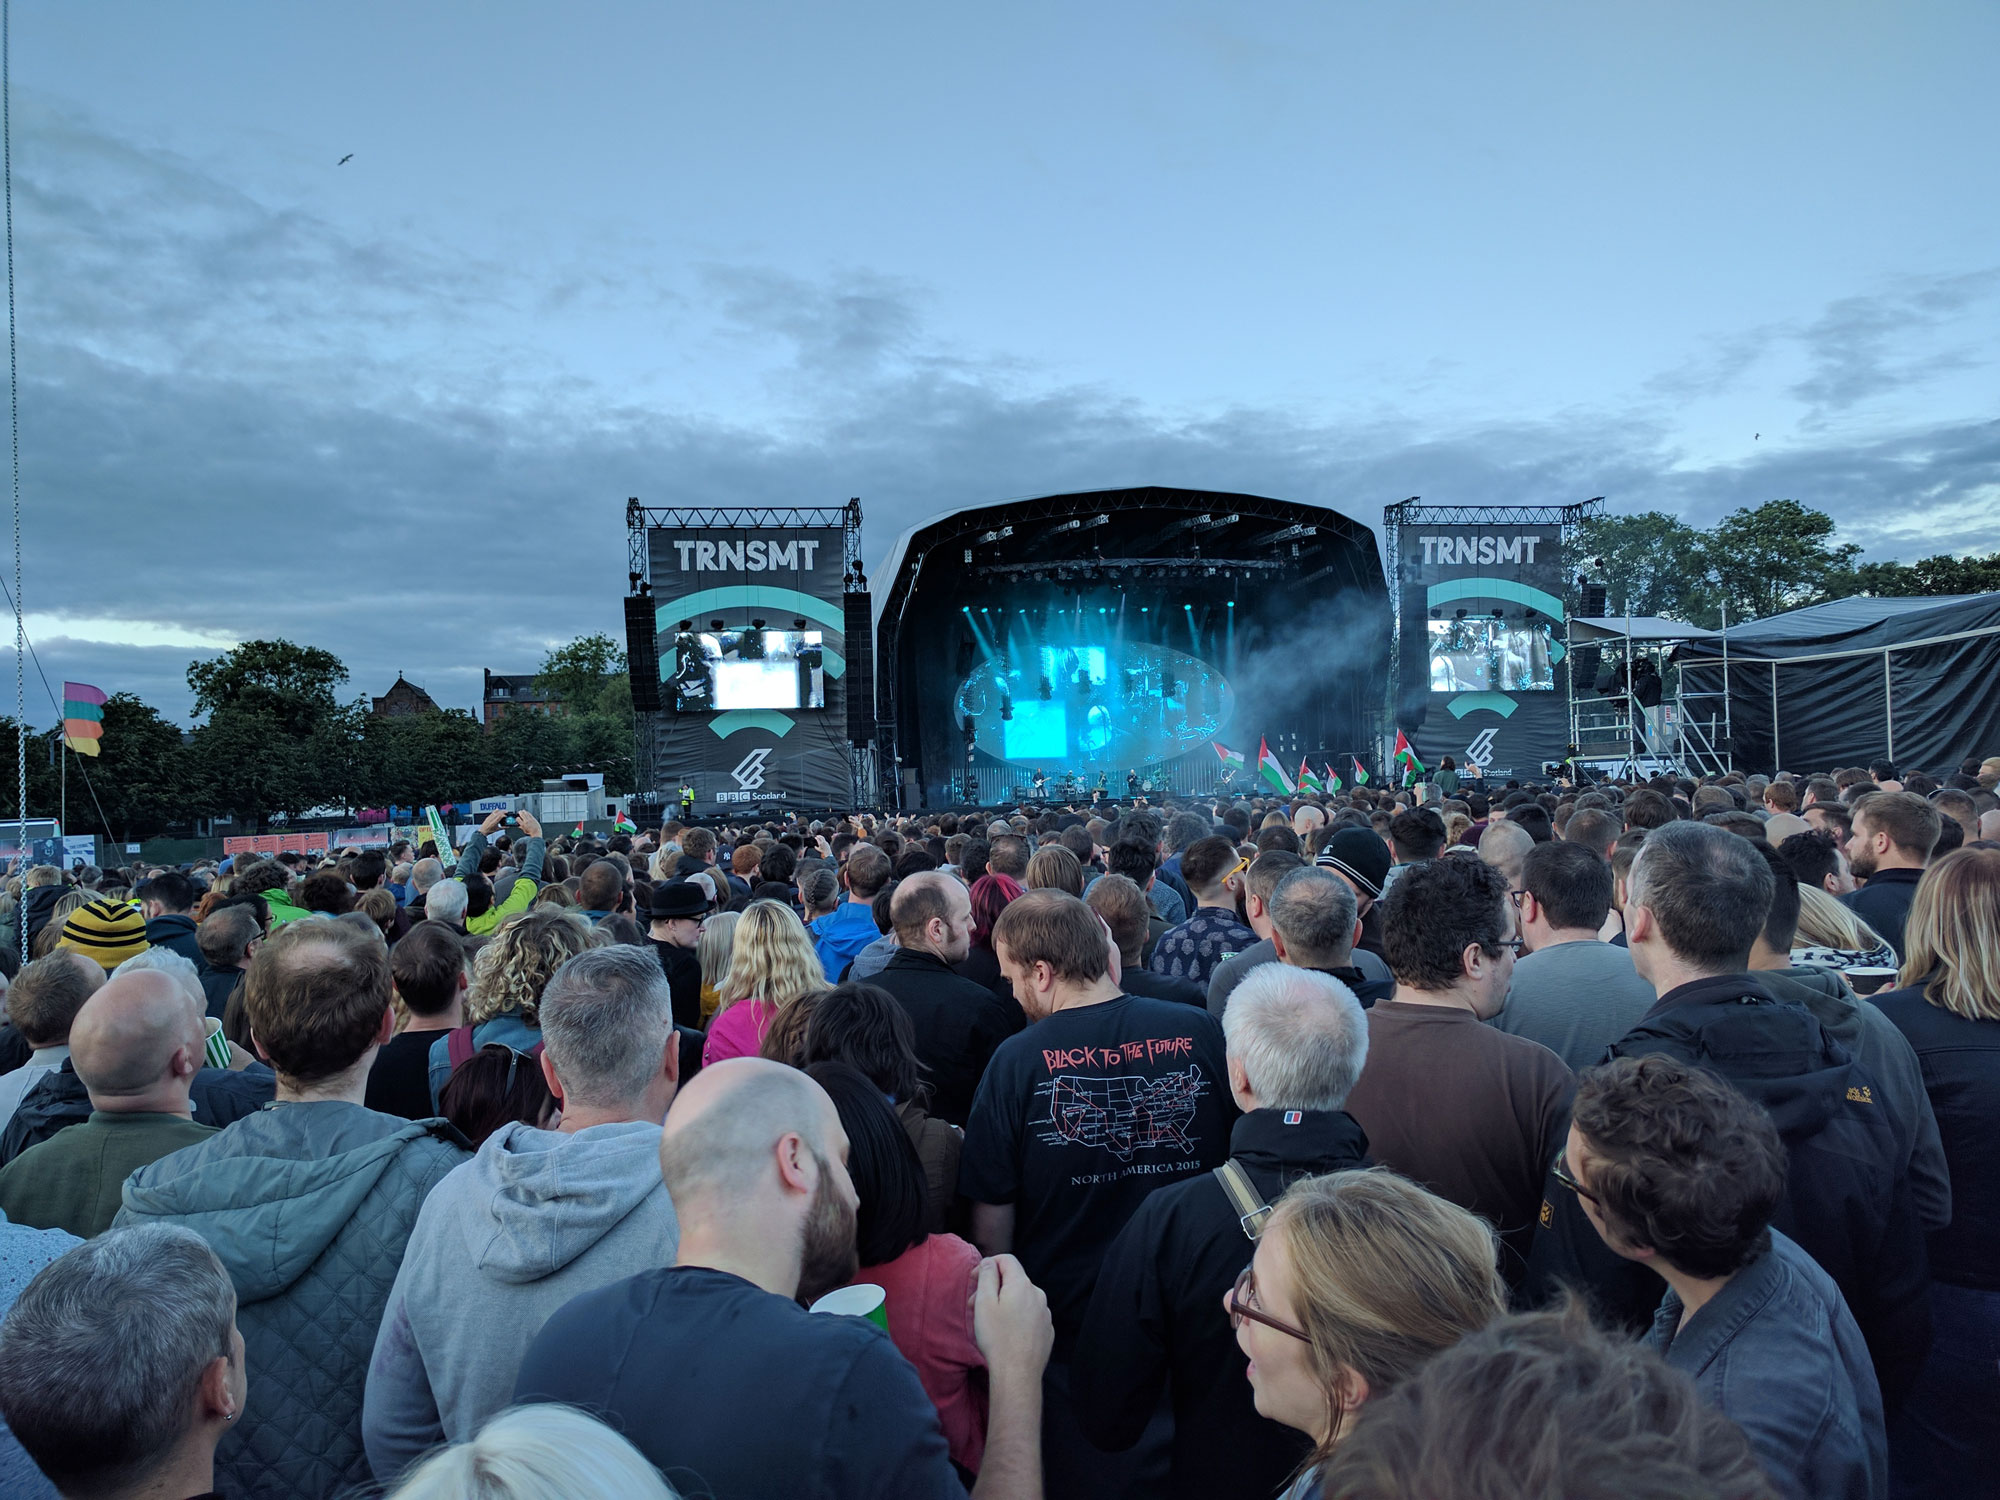 TRNSMT Festival at Glasgow Green